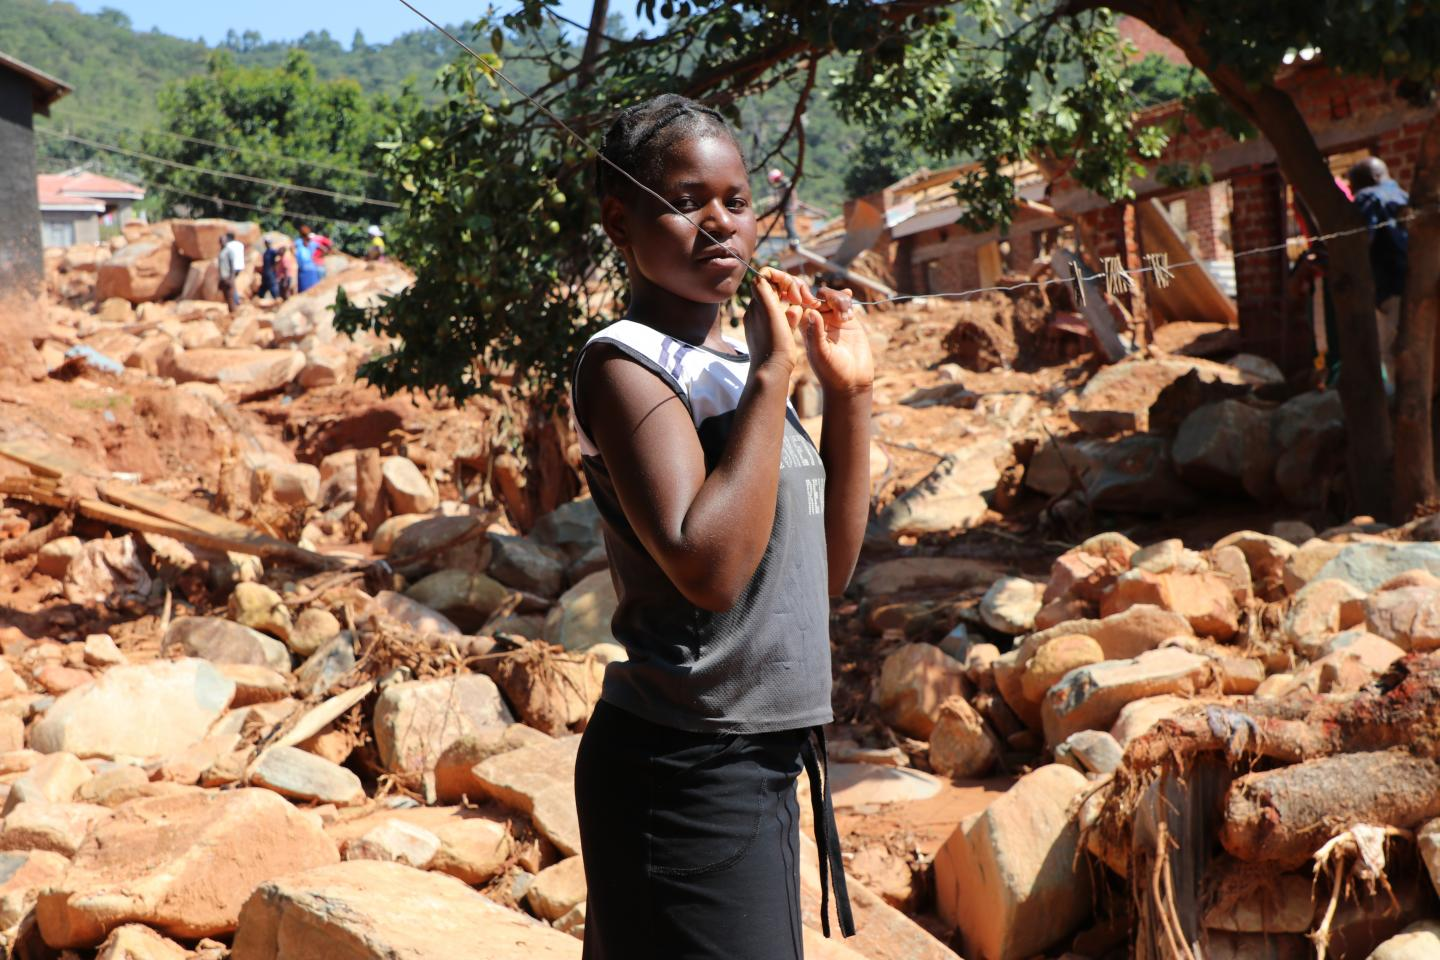 Praise stands among what used to be her neighborhood in Ngangu Township. Most houses have been completely buried by the rocks that tumbled down the mountain when Cyclone Idai hit. ©UNICEF Zimbabwe/Elizabeth Mupfumira